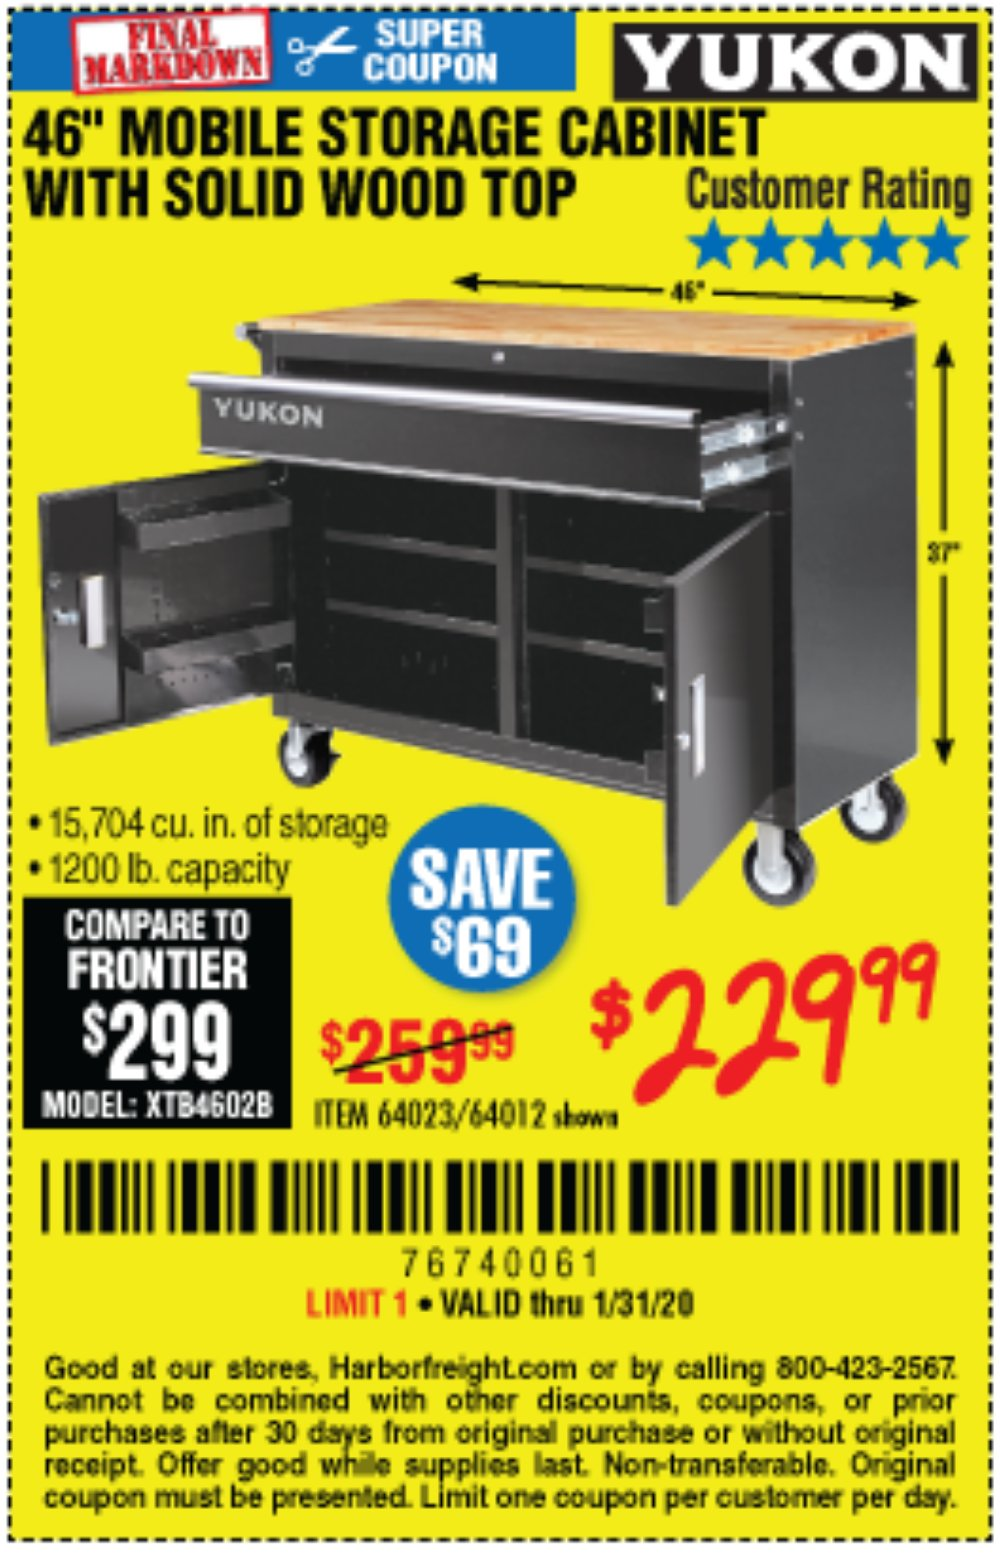 Harbor Freight Coupon, HF Coupons - Yukon 46